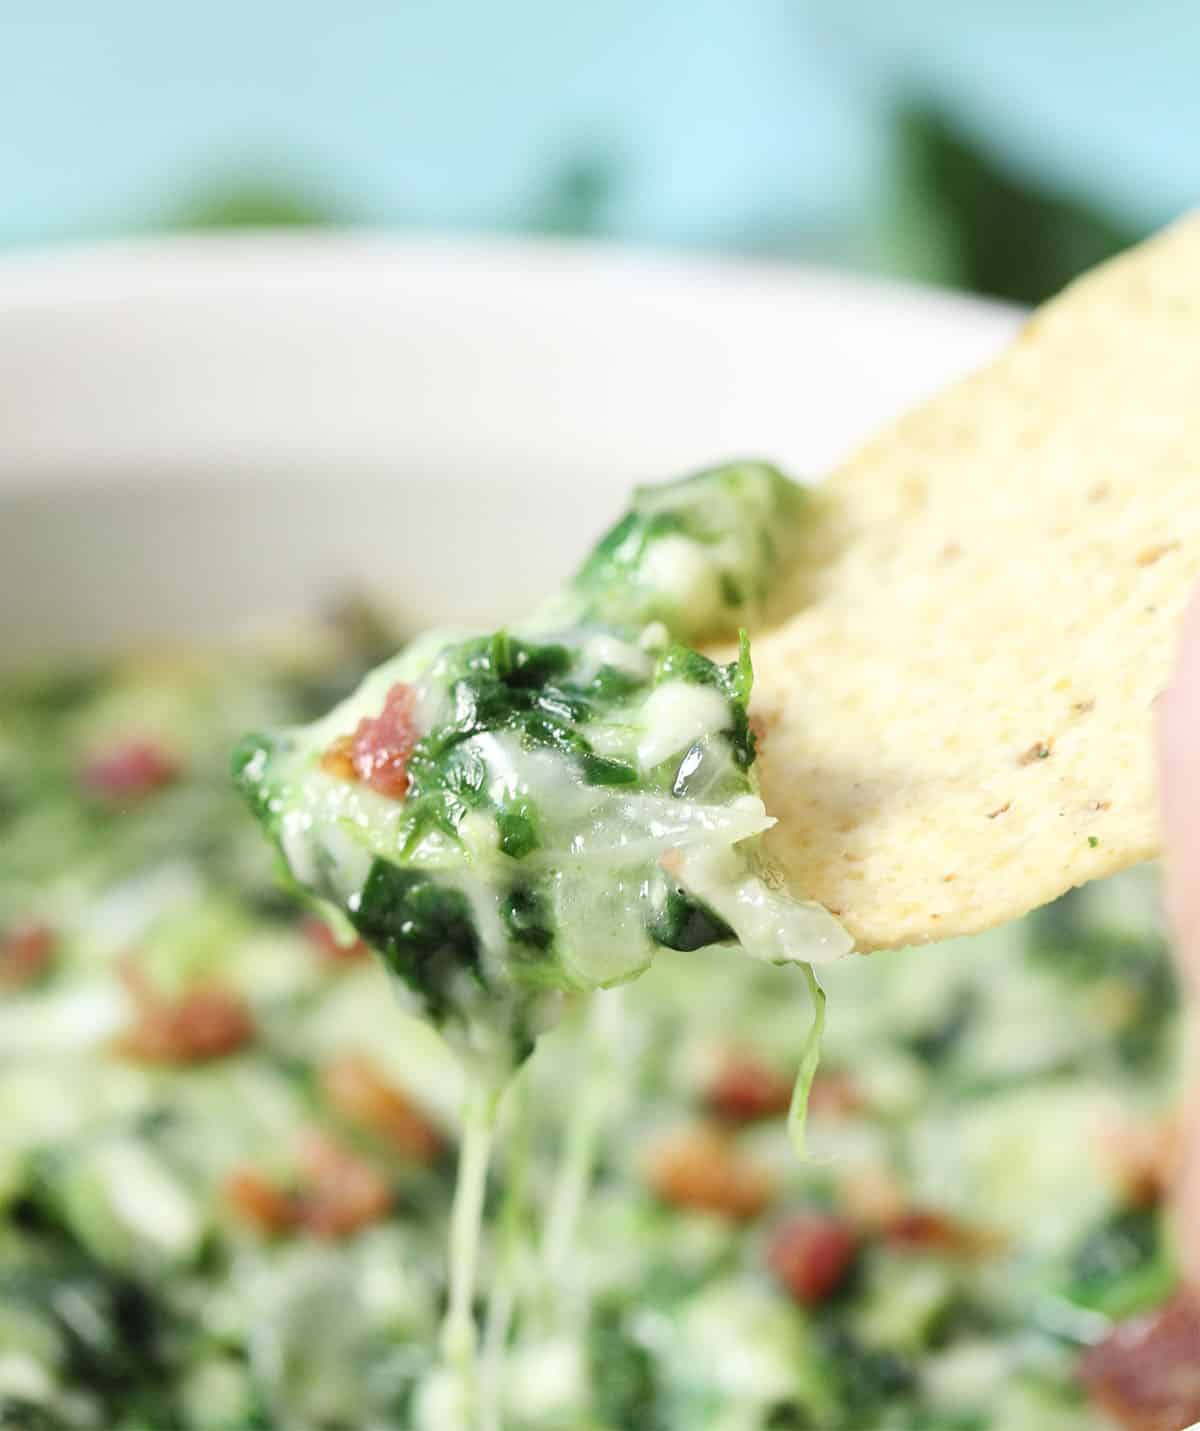 Closeup of scoop of spinach dip on tortilla chip.